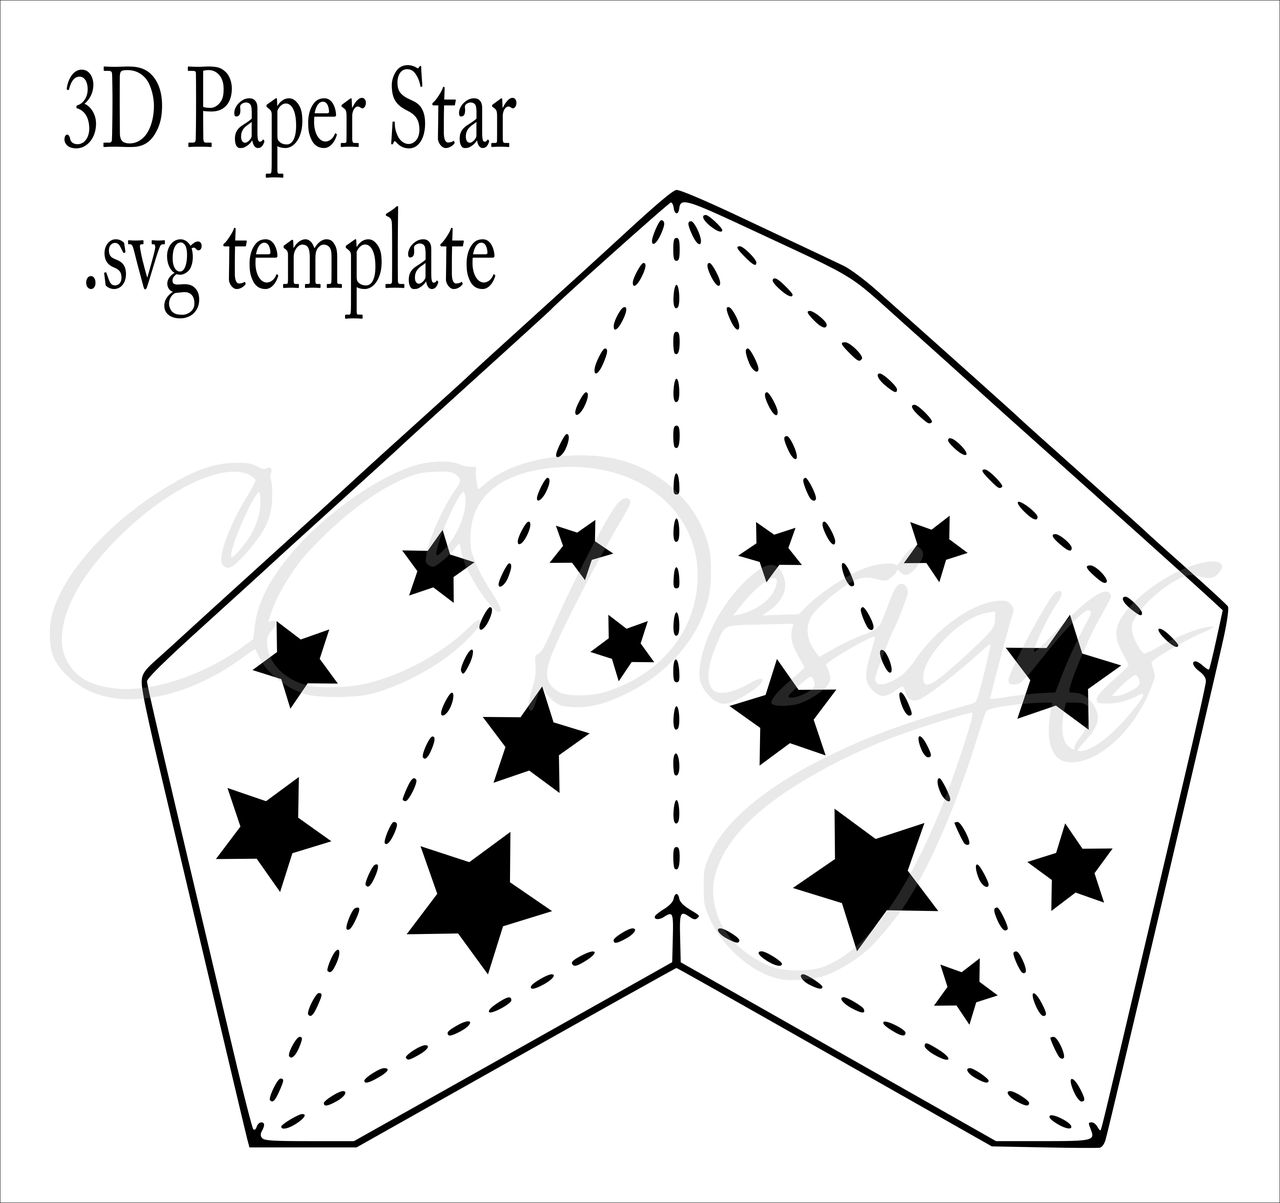 It's just an image of Star Stencil Printable inside cut out